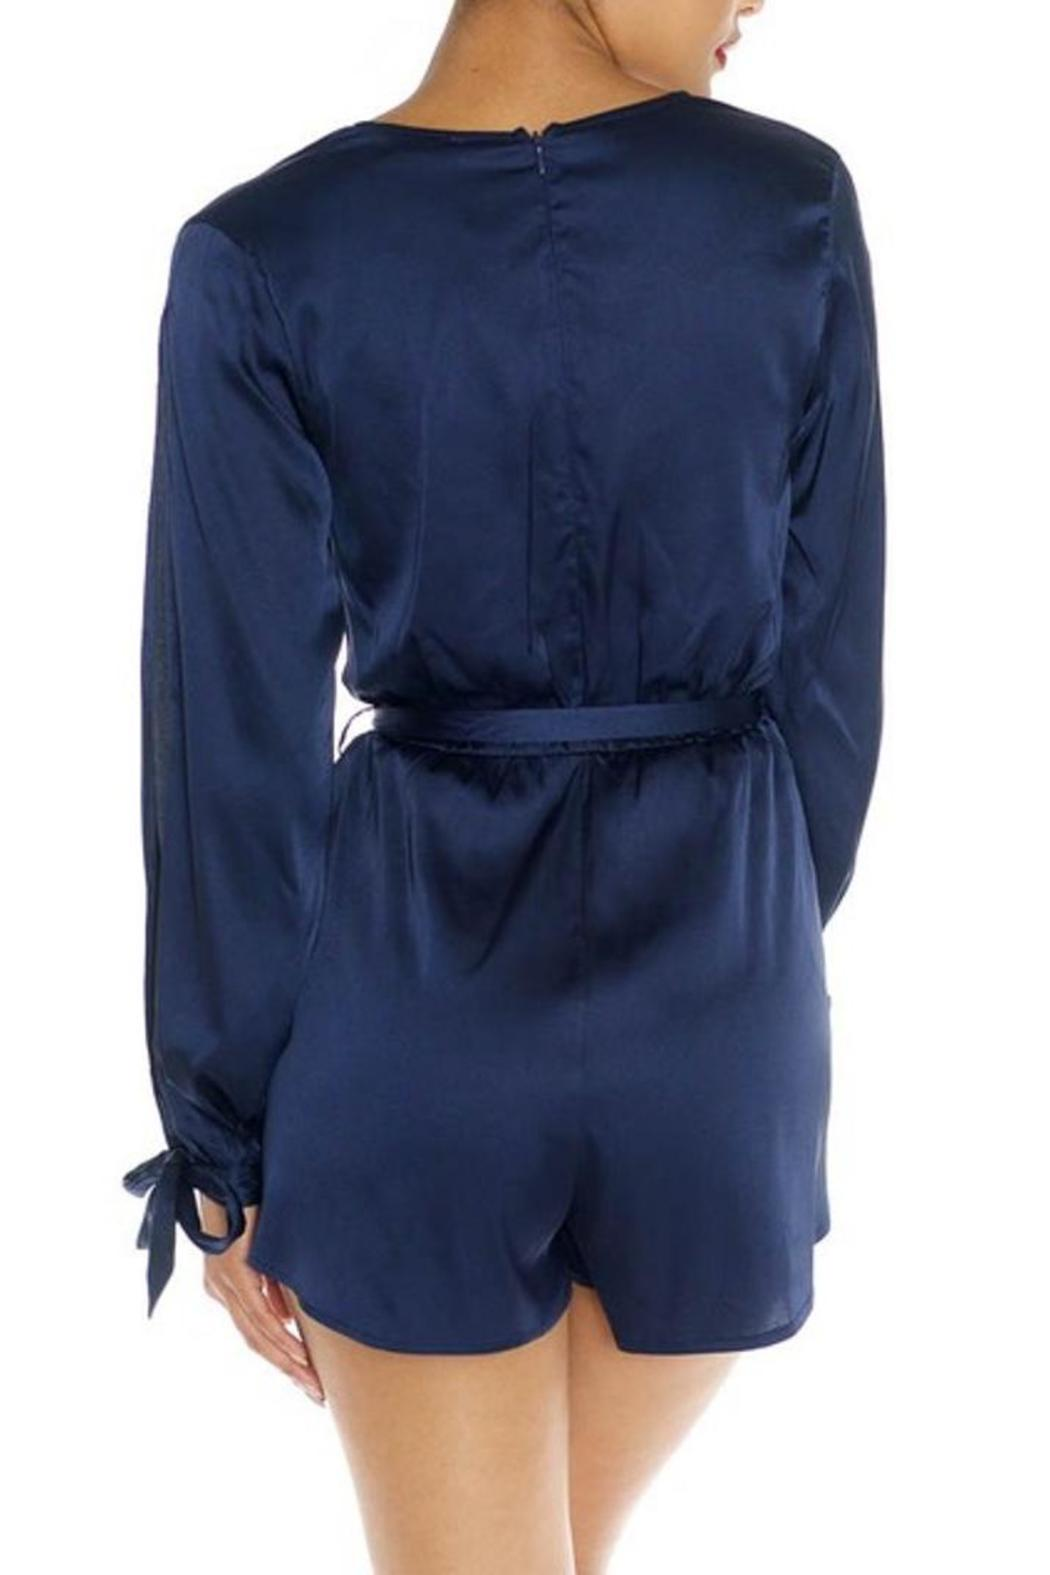 fcf0e922a982 luxxel Navy Satin Romper from Miami by Secret Vanity — Shoptiques